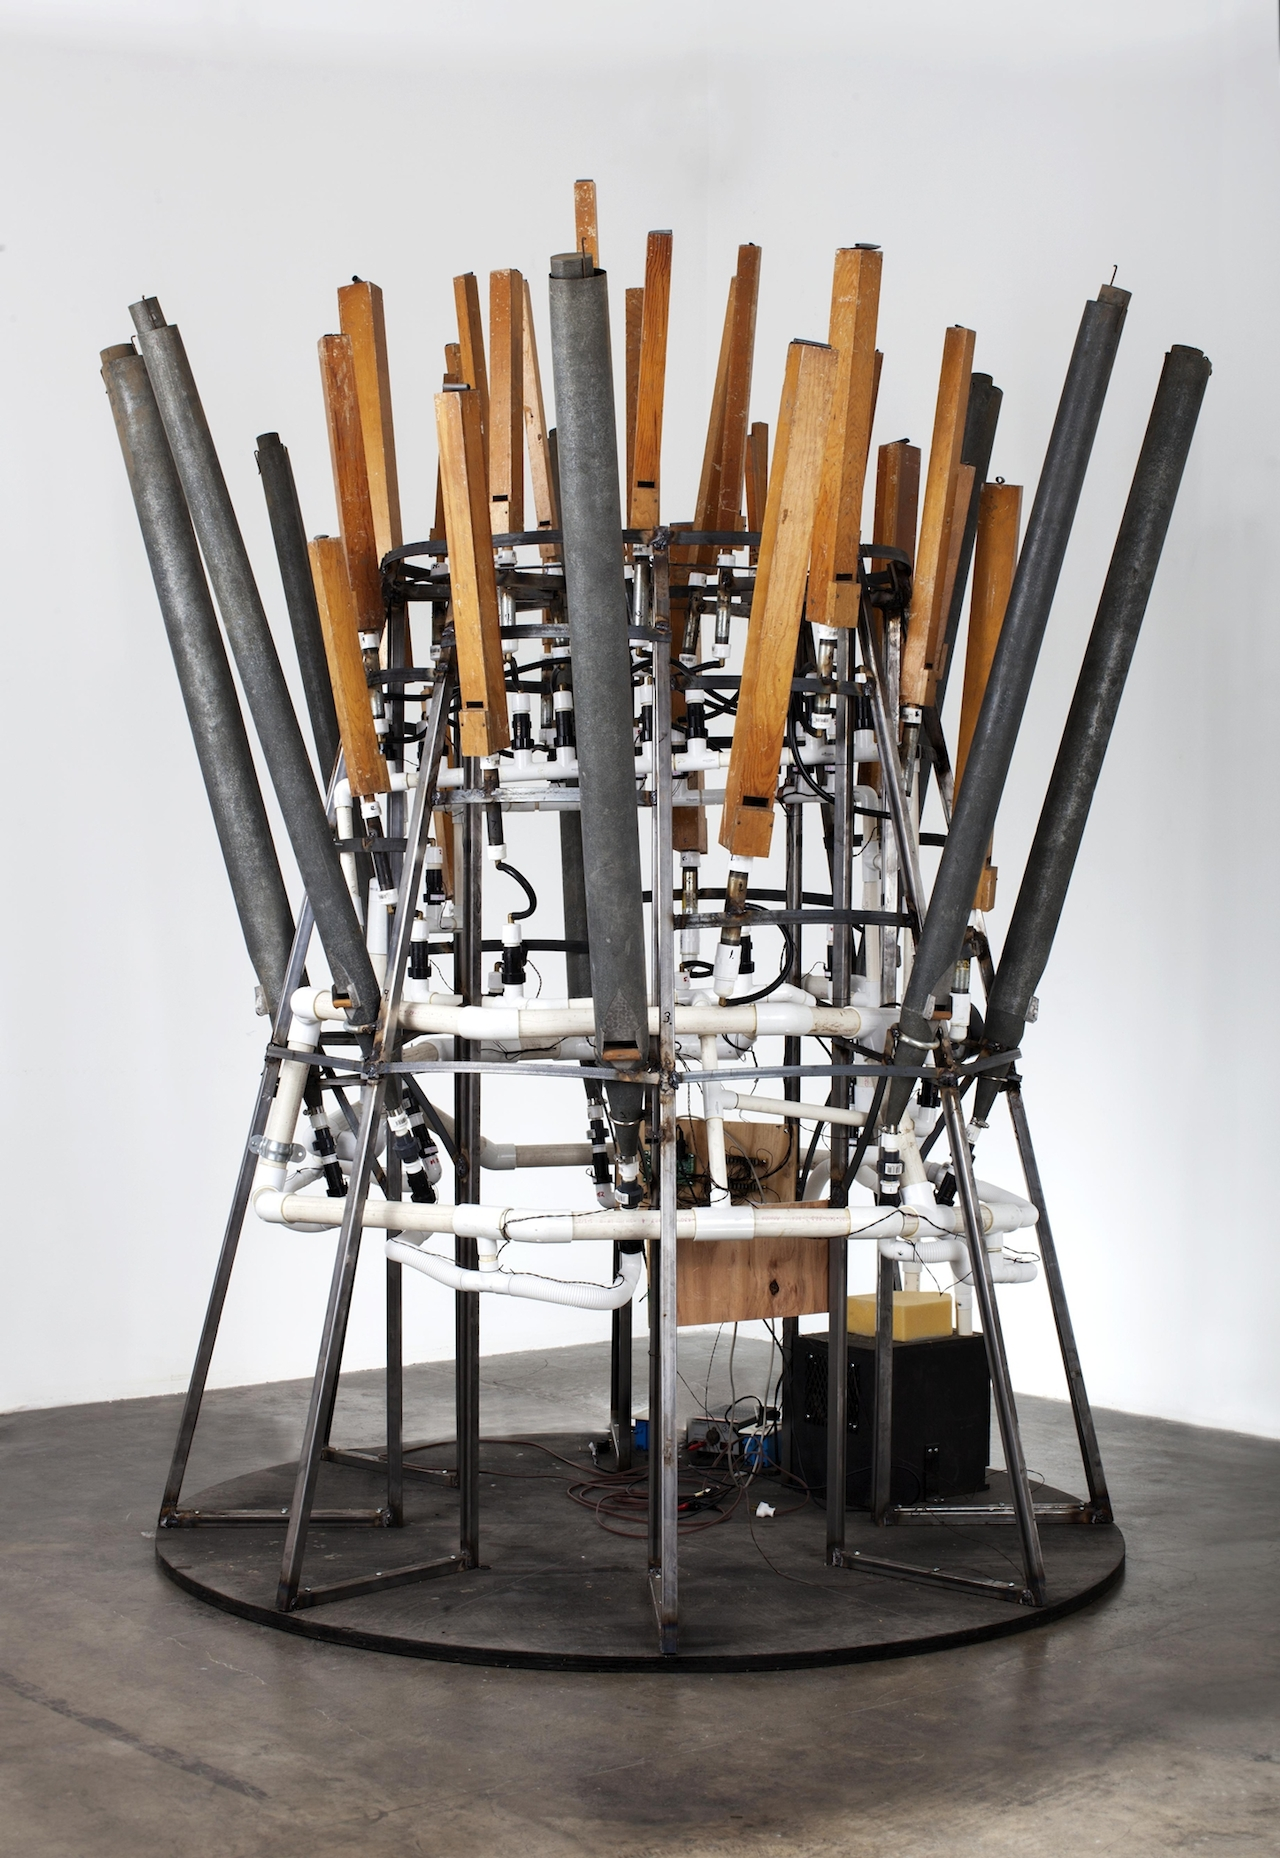 Mark Motherbaugh The General, 2014 Vintage organ pipes, electronics, and steel 96 x 87 in. Photograph by David Lekach